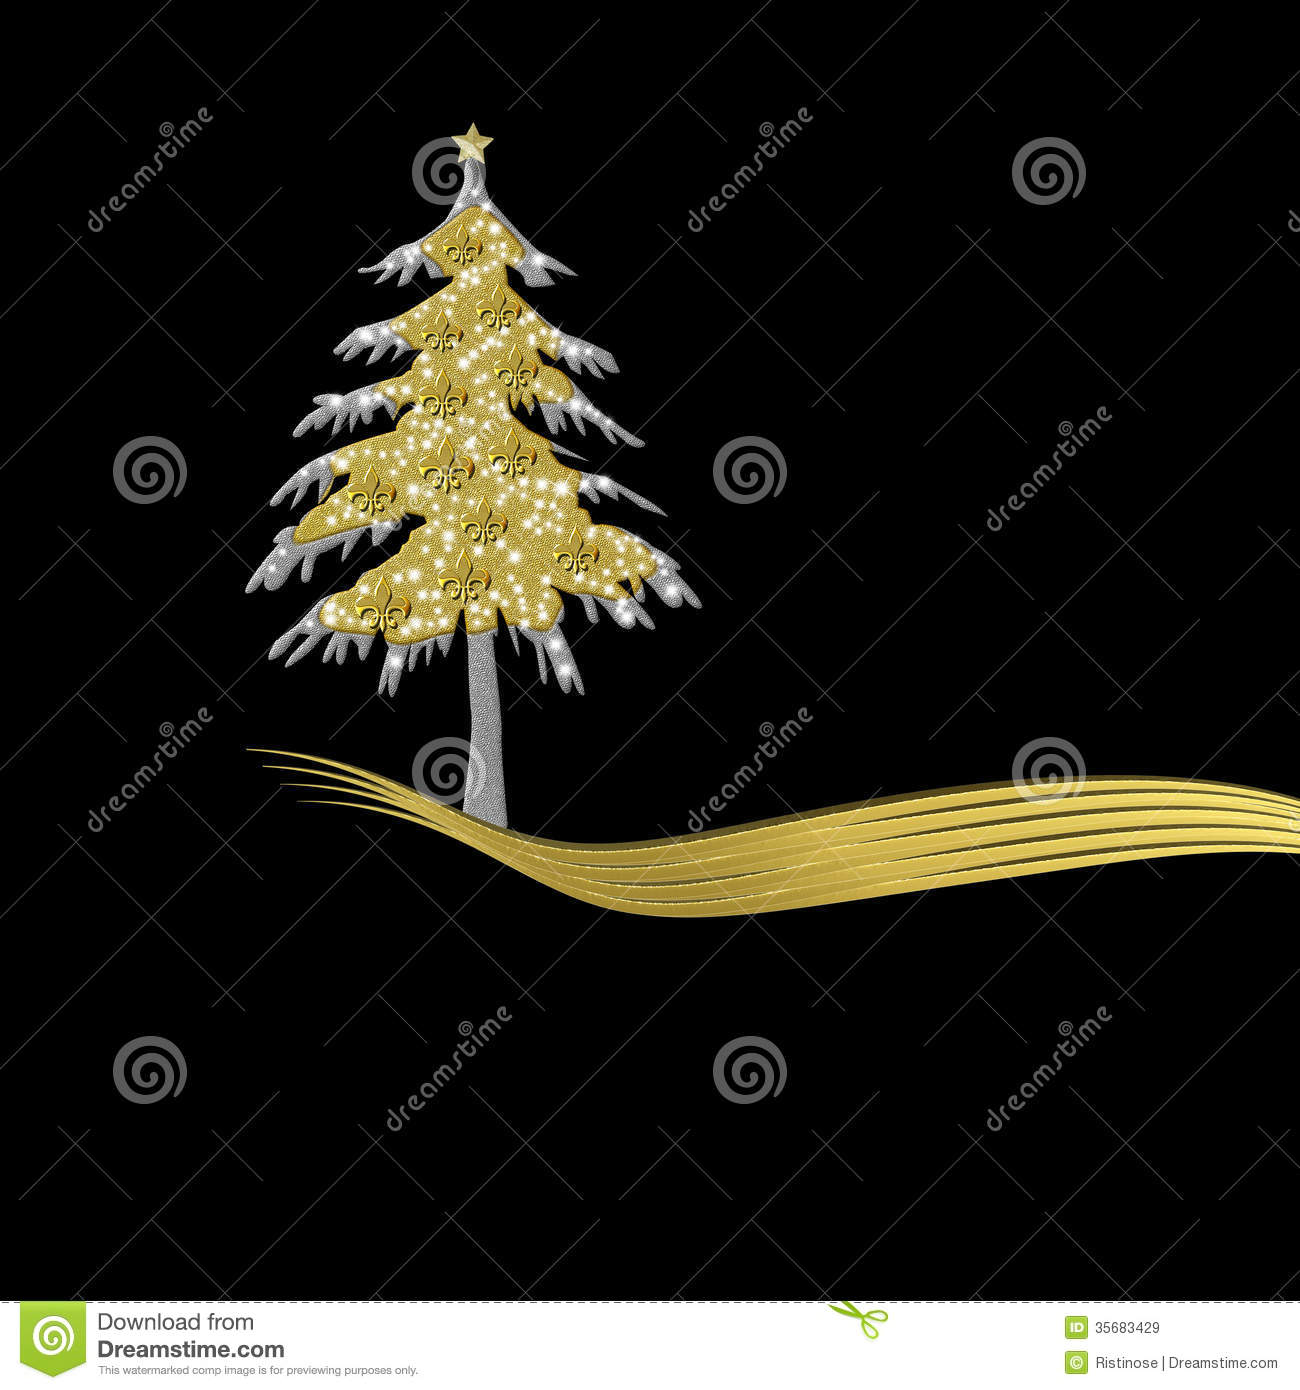 Elegant Christmas Card In Gold And Black Tree Ornament